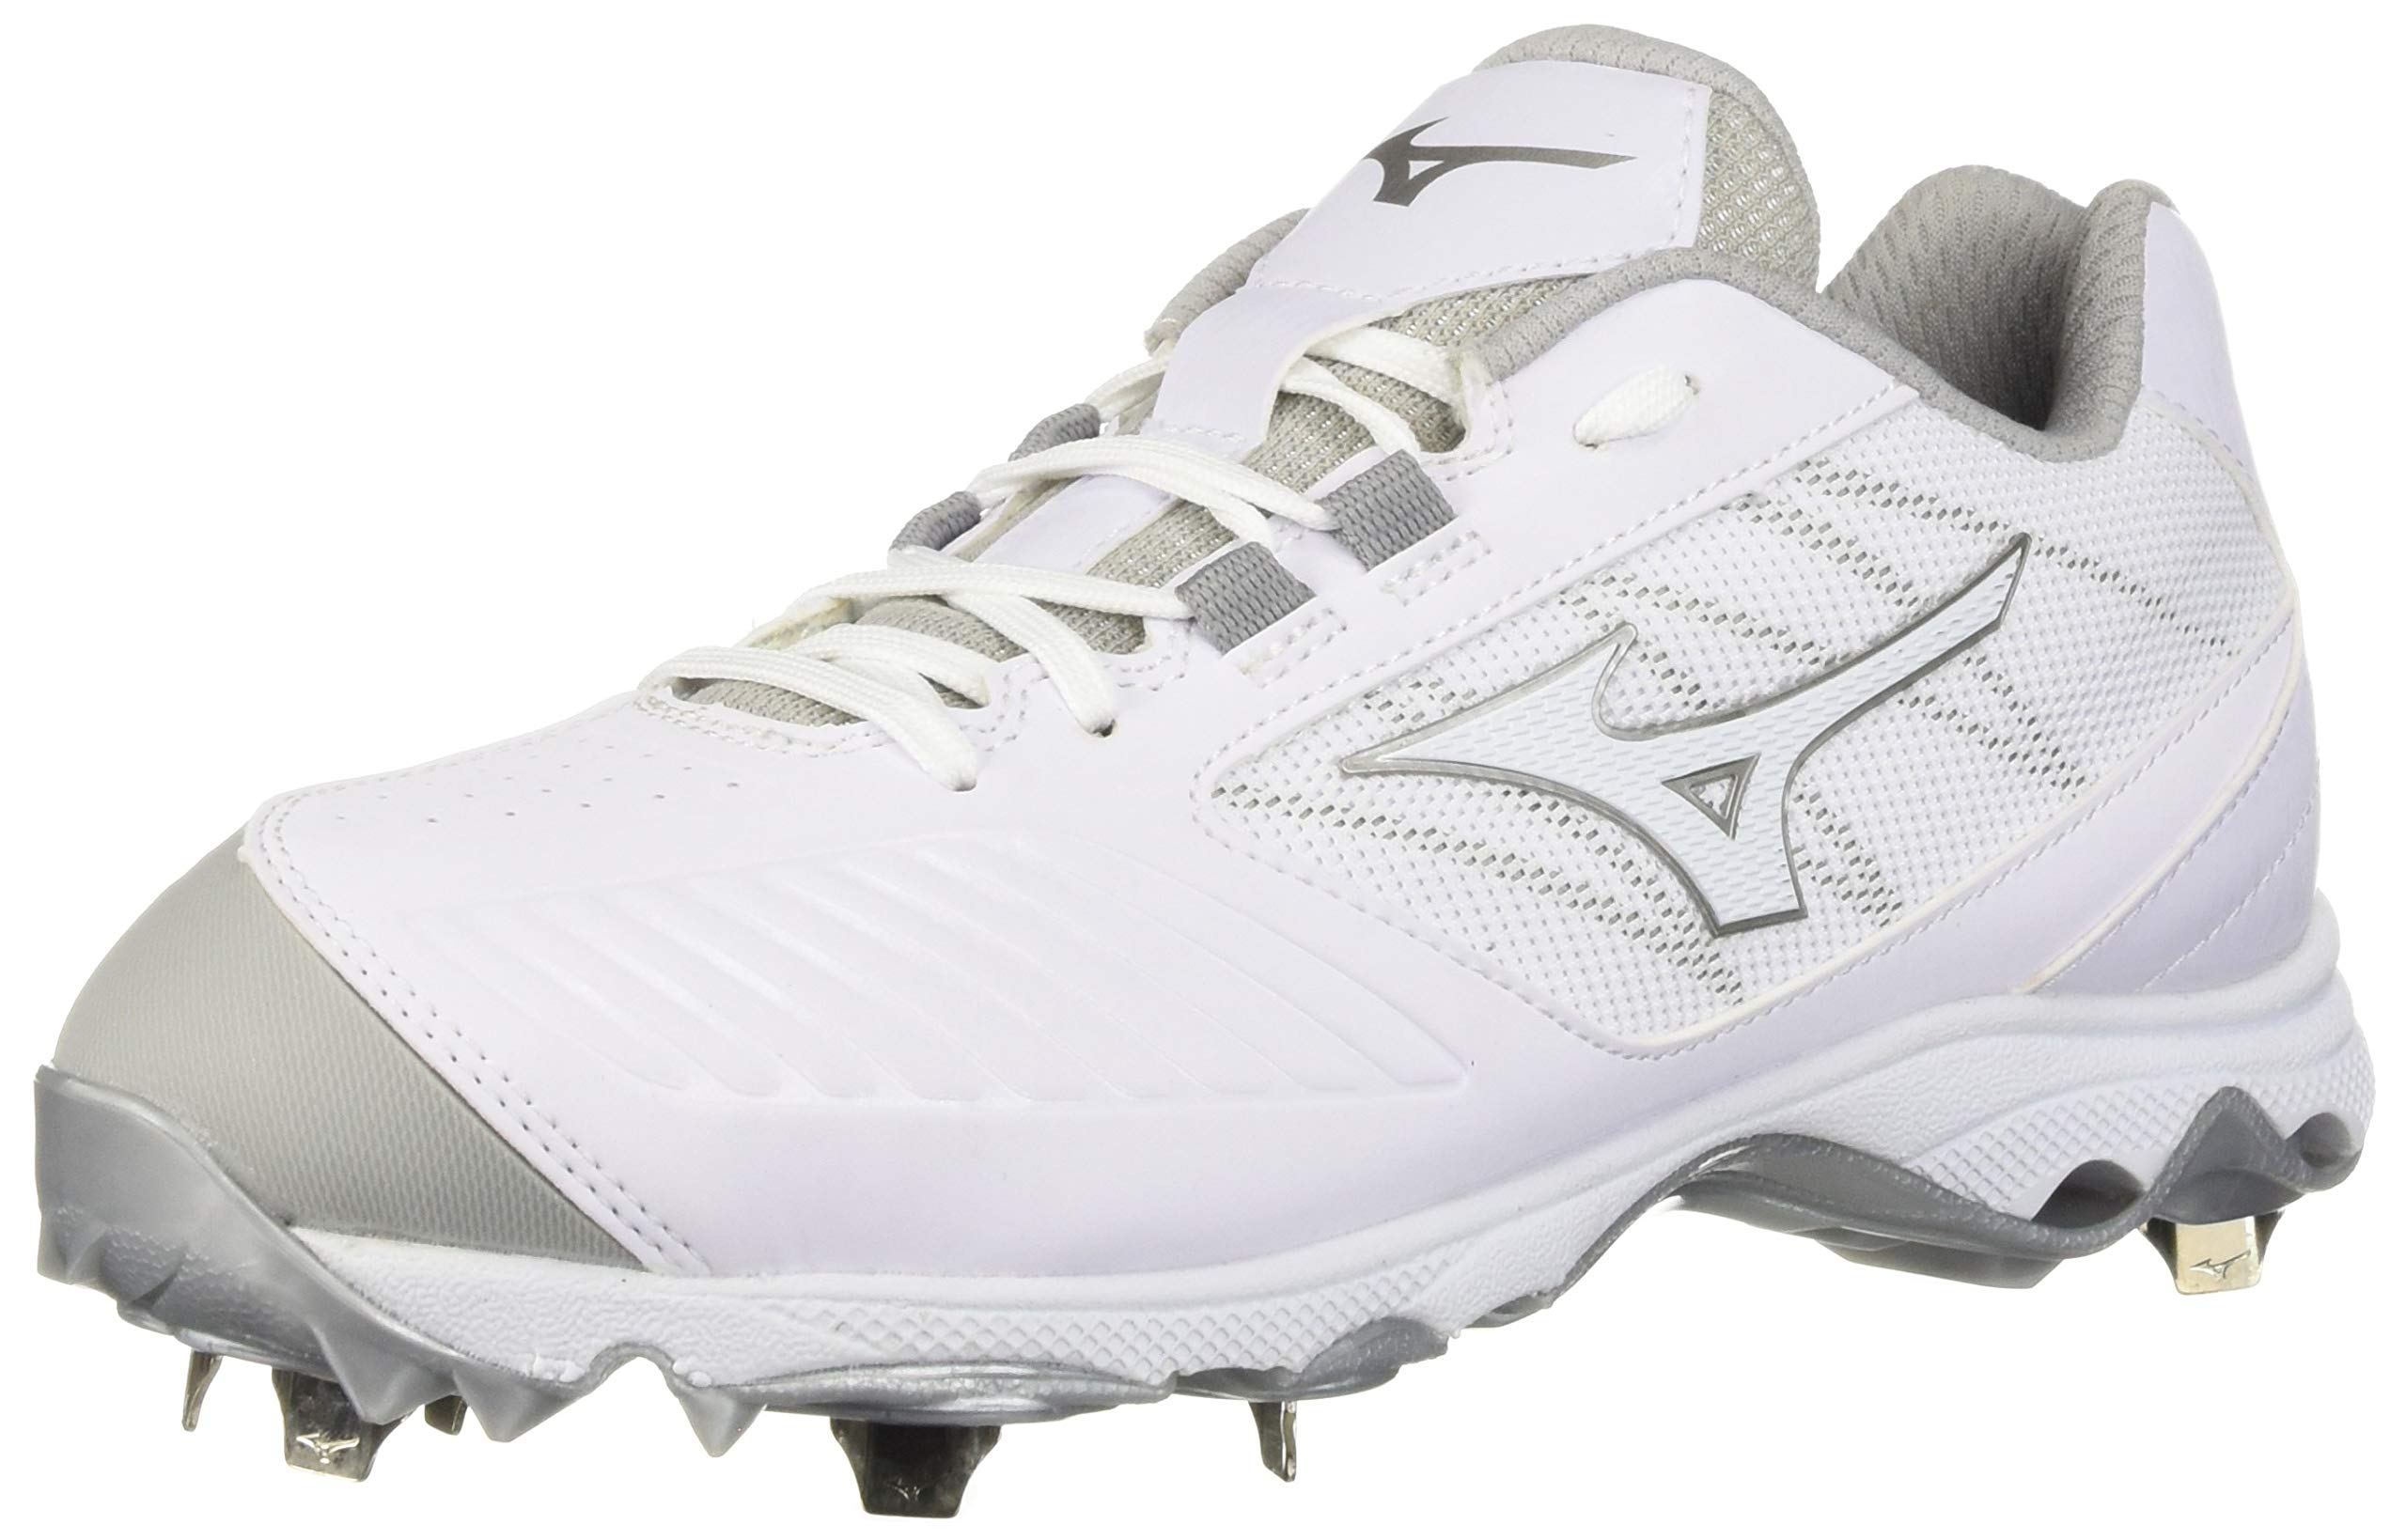 9-SPIKE ADVANCED SWEEP 4 6.5 White by Mizuno